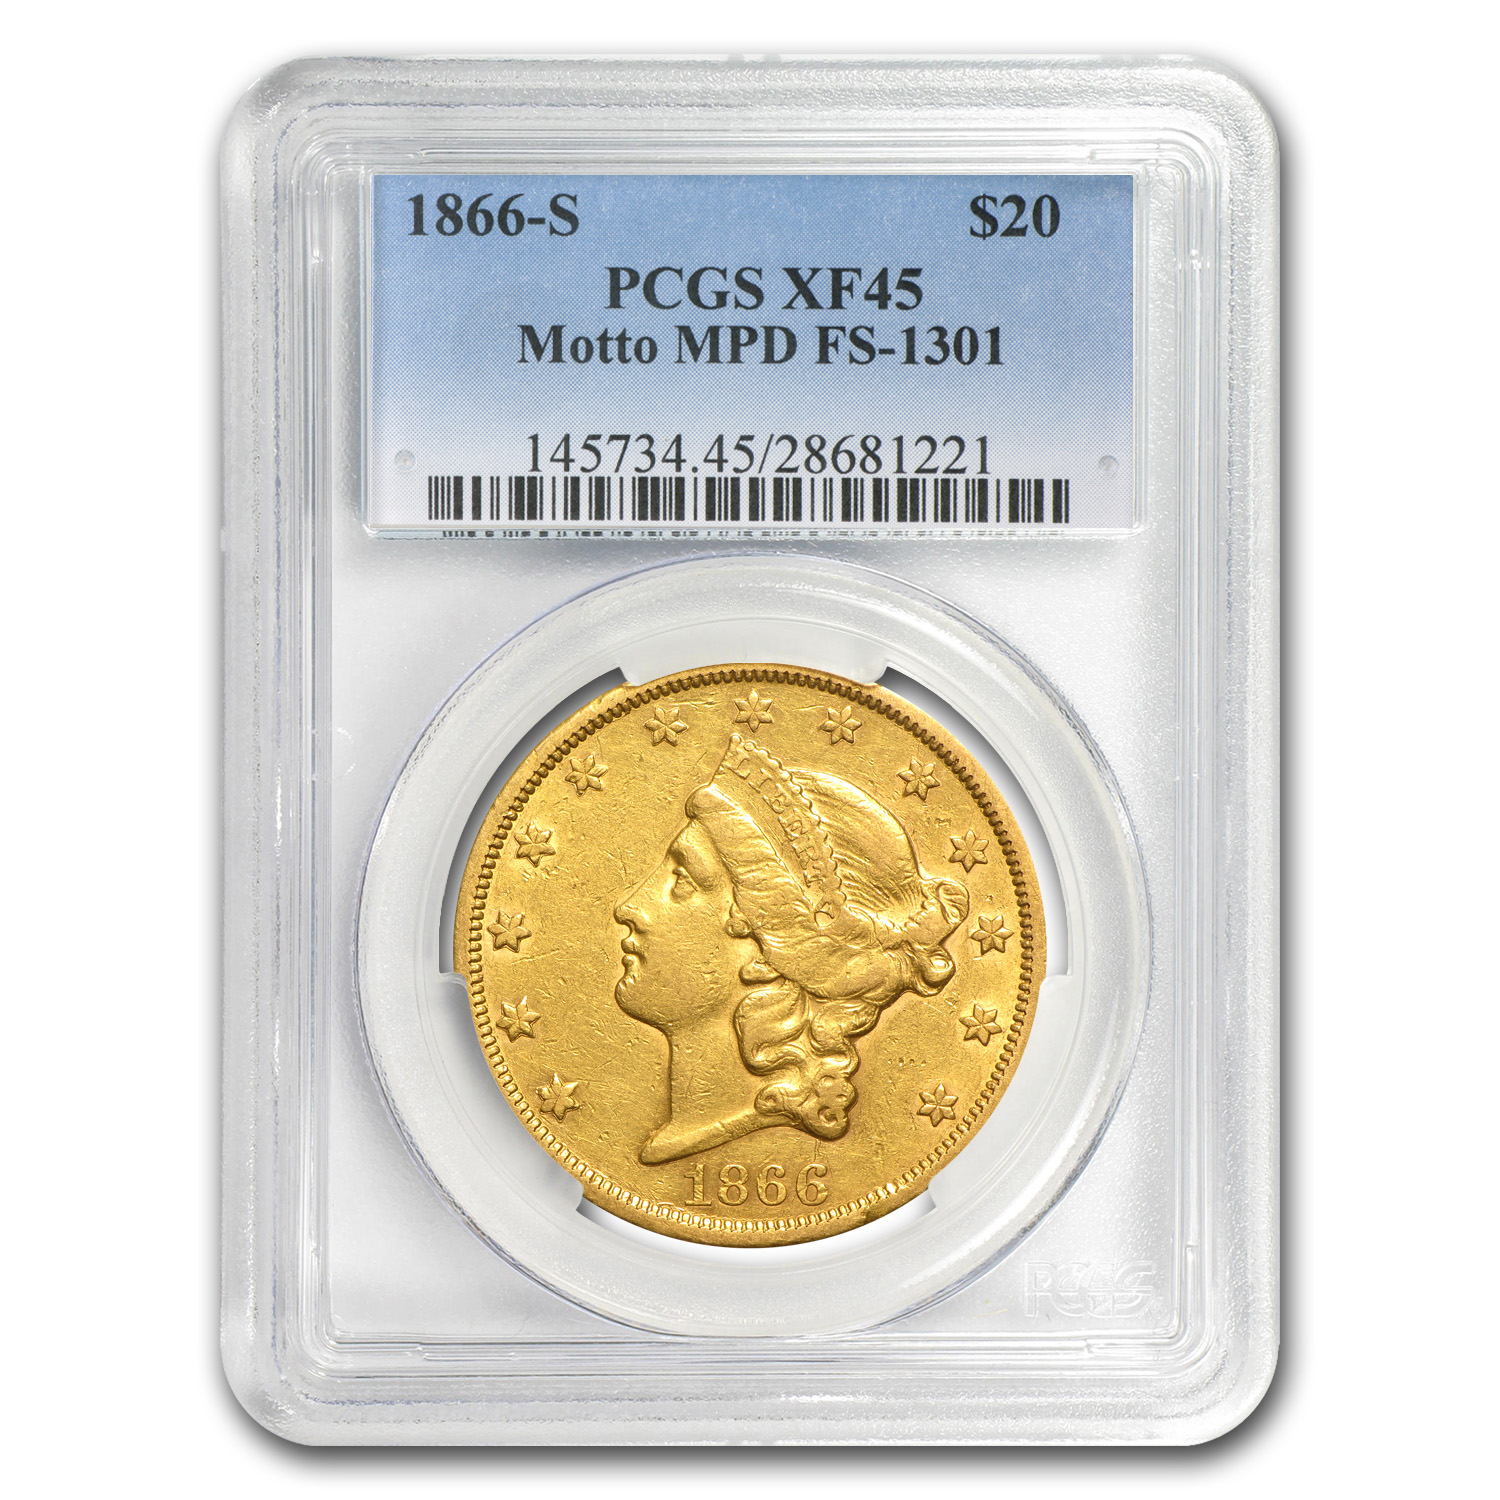 1866-S $20 Liberty Gold Double Eagle XF-45 PCGS (w/Motto, MPD)